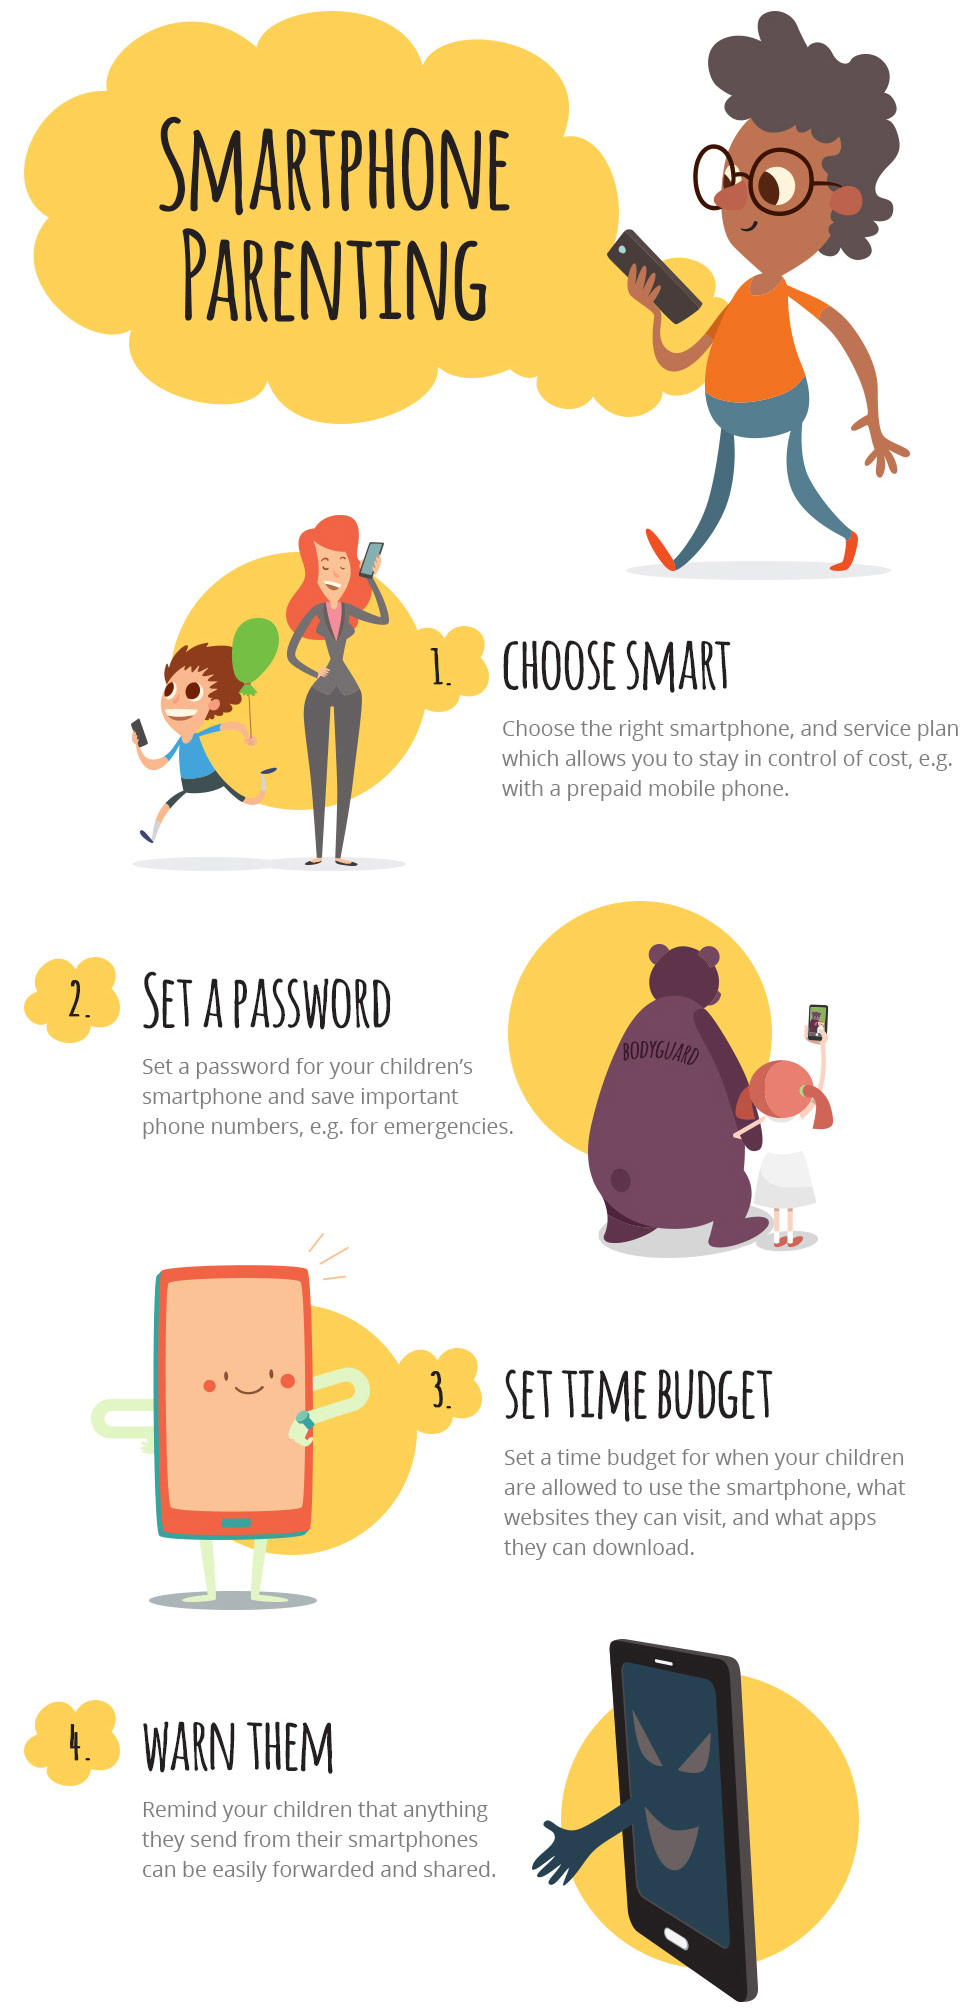 Avira Infographic - Smartphone Tips for Parents and Kids